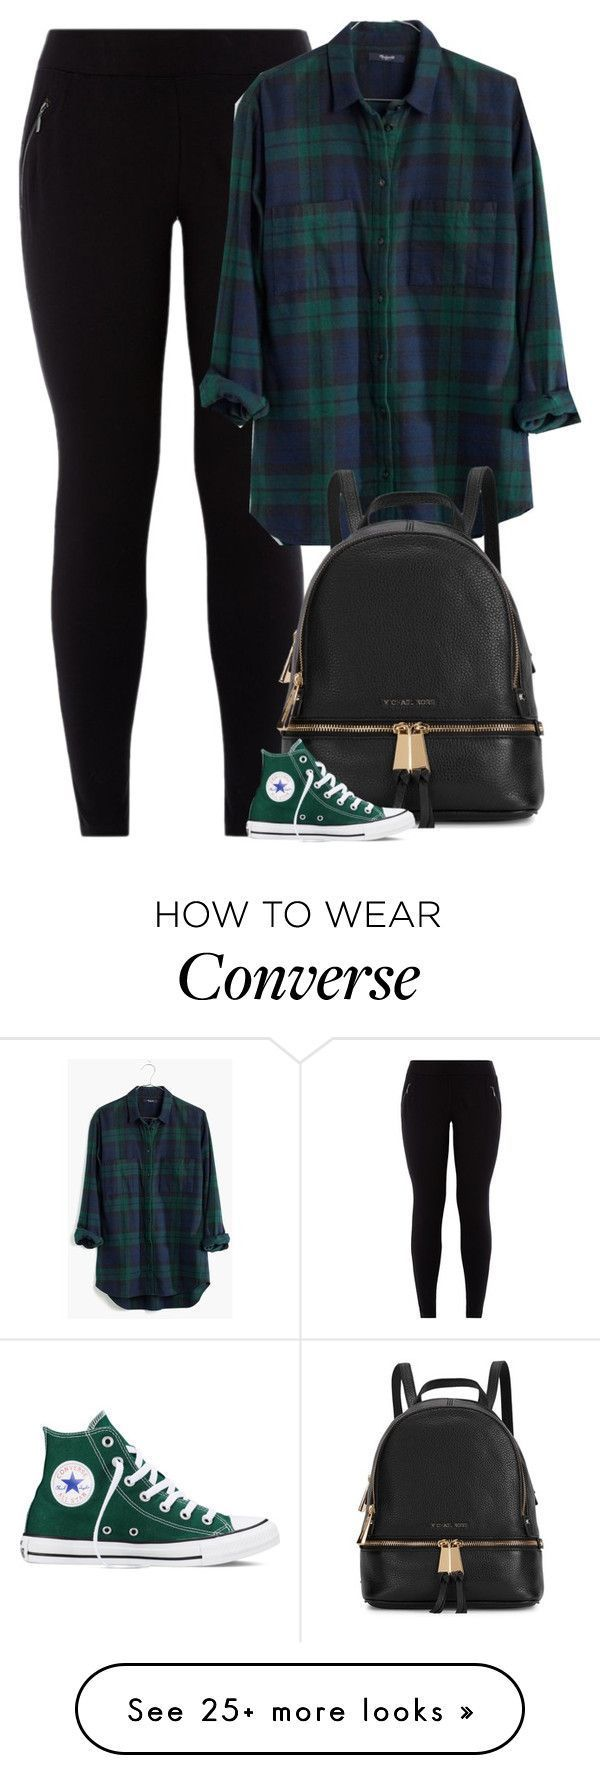 """Giovanna"" by fanny483 on Polyvore featuring Madewell, Michael Kors, Converse, women's clothing, women, female, woman, misses and juniors"